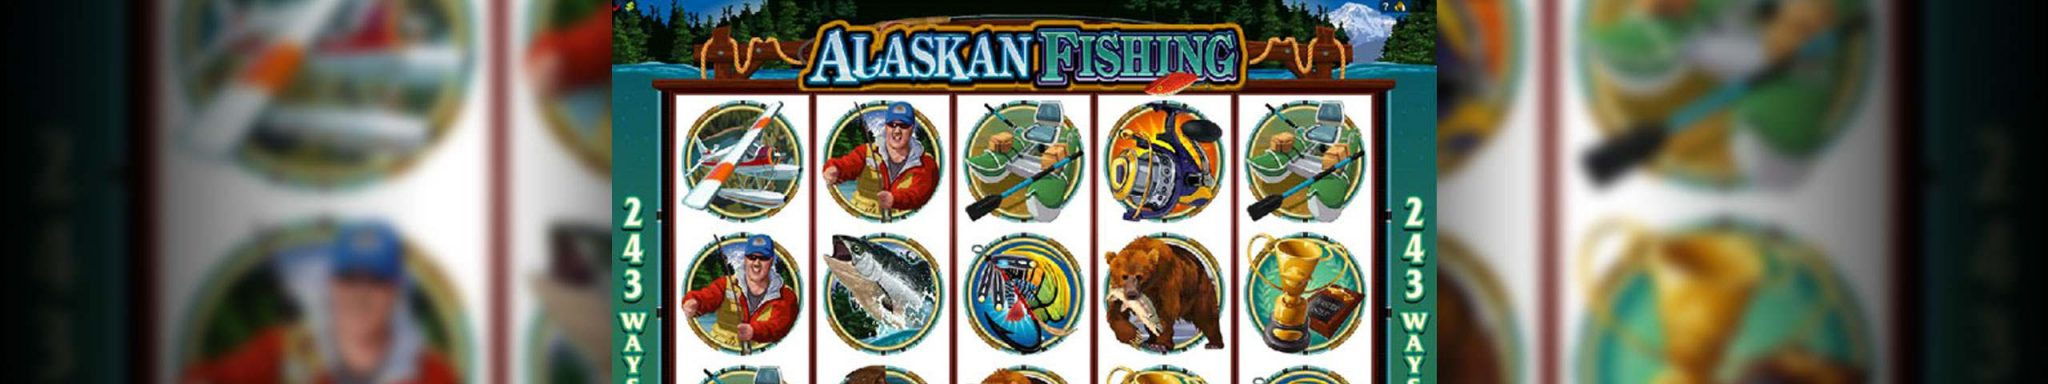 Alaskan Fishing Microgaming spilleautomater slider